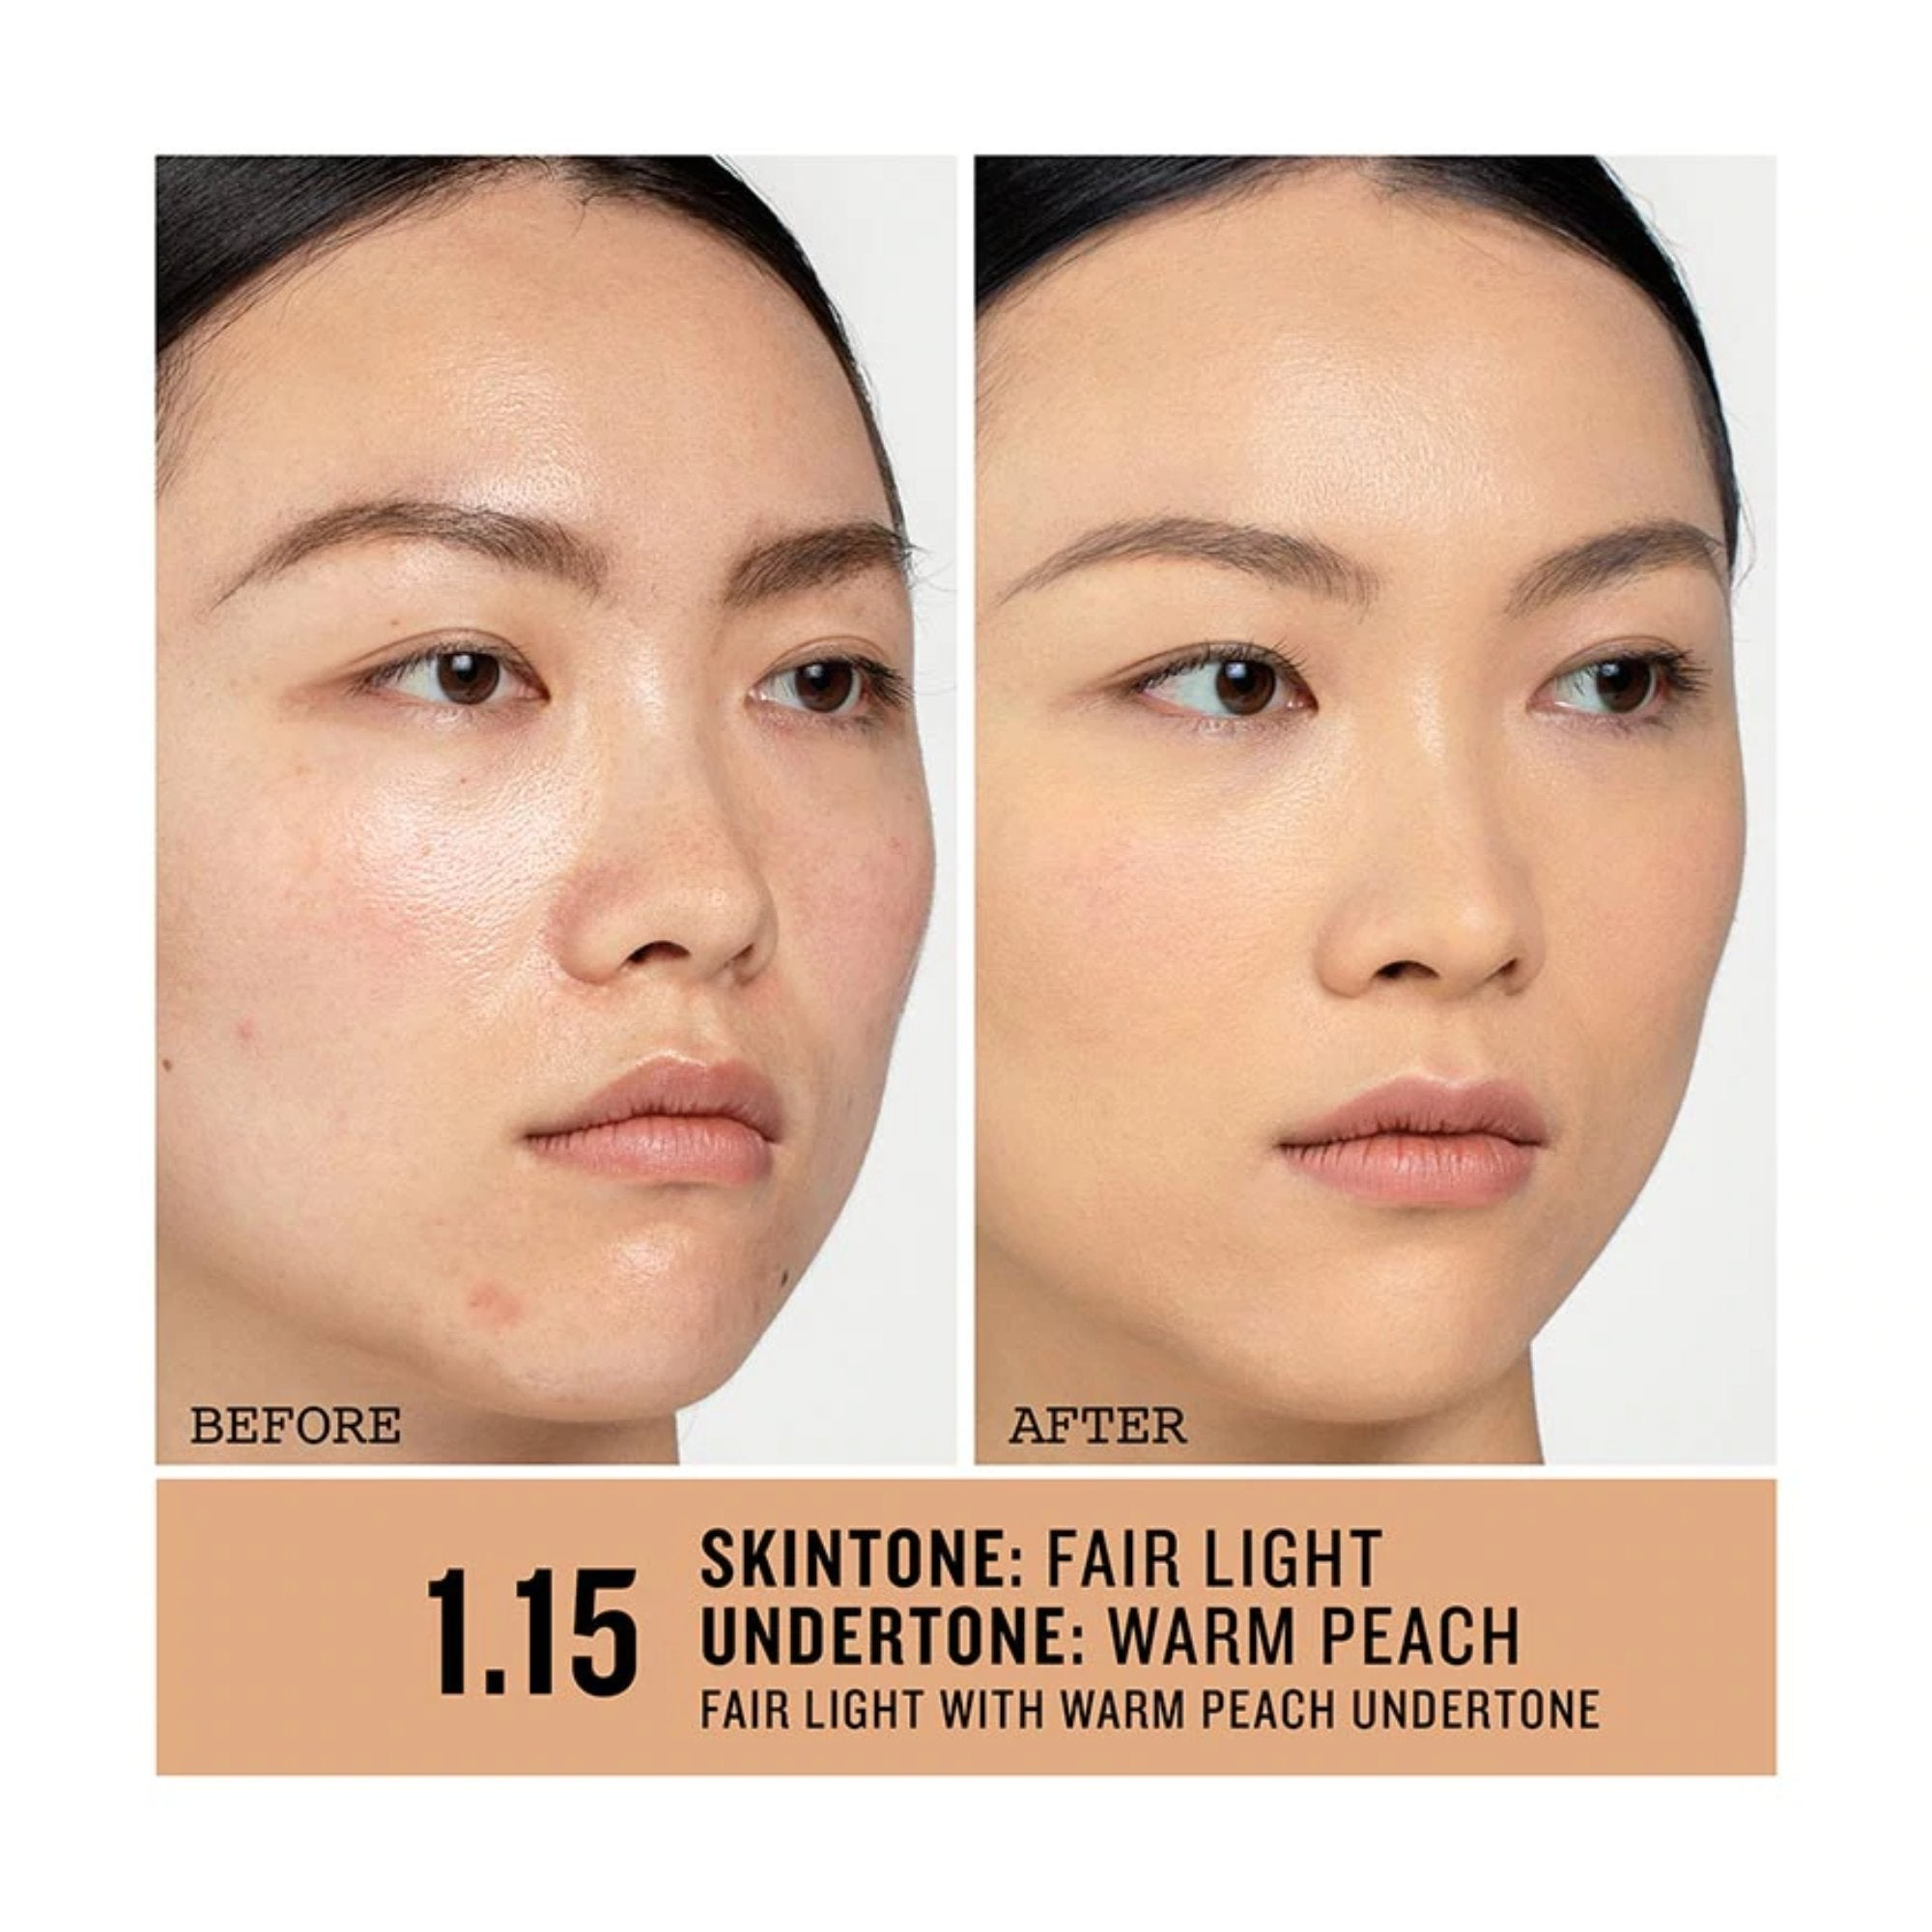 1.15 Fair-Light, Warm and Peachy